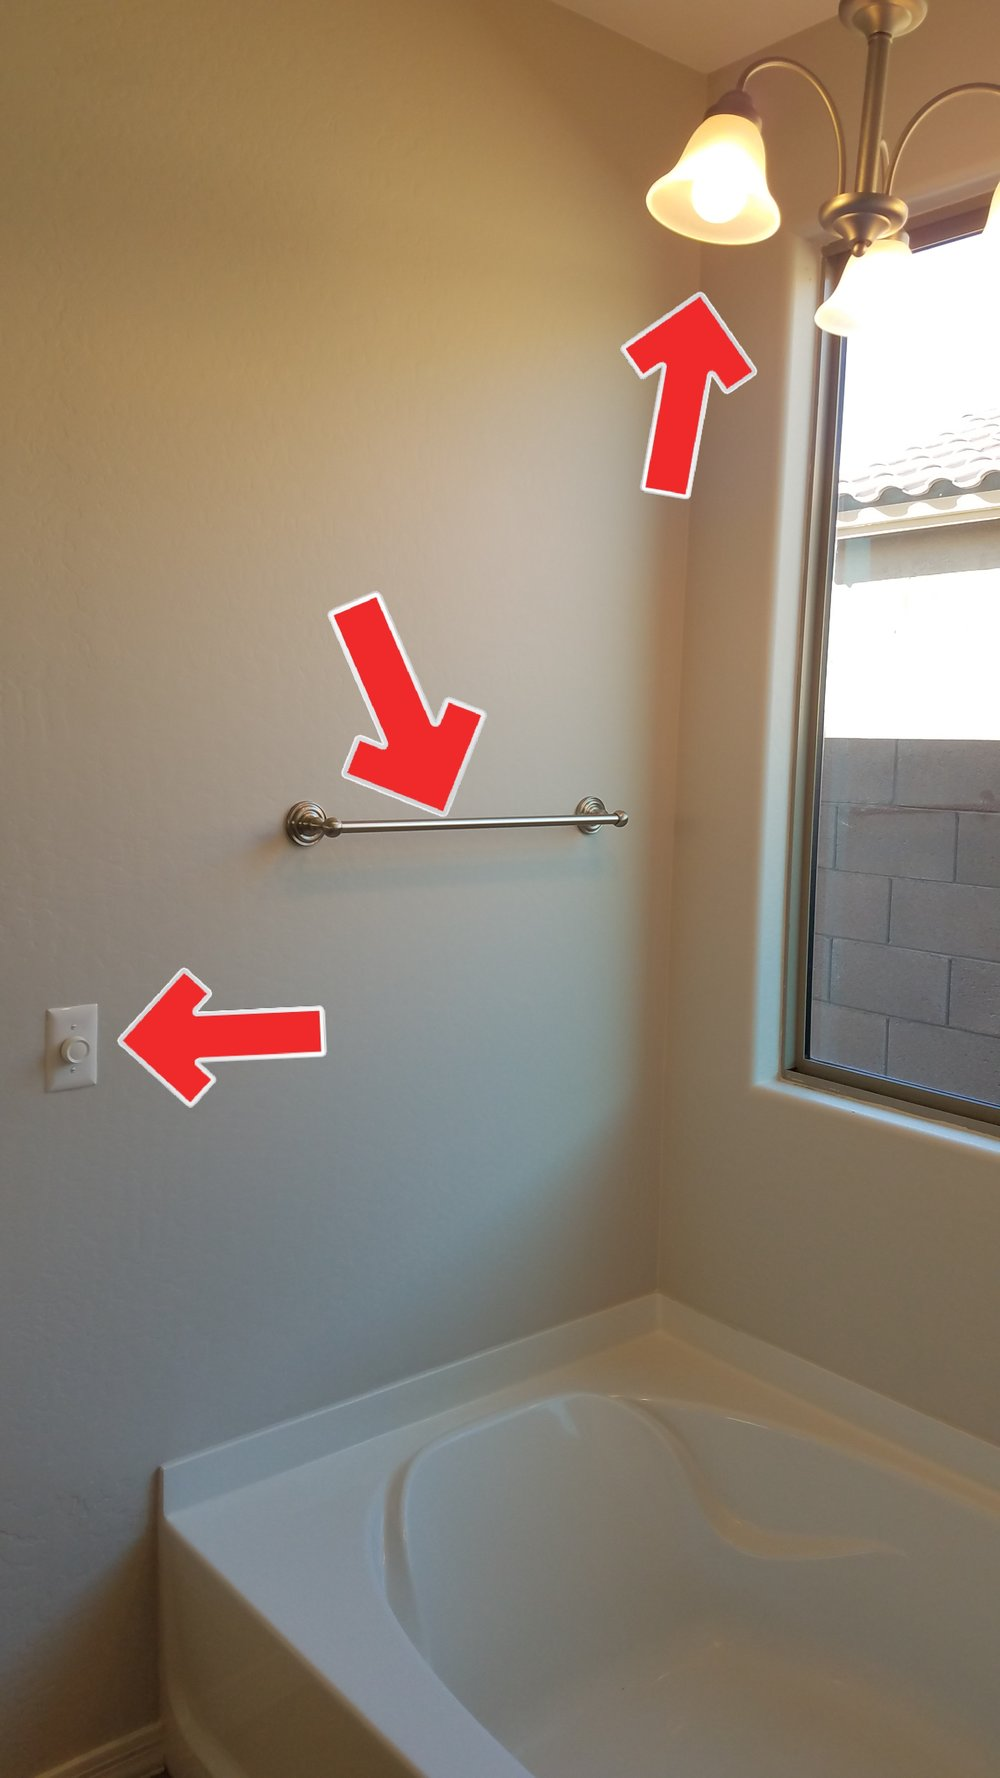 A hanging light fixture over a tub, a switch within 3' of tub and a towel bar that might be mistaken for a handrail. Many hazards, terrible planning.